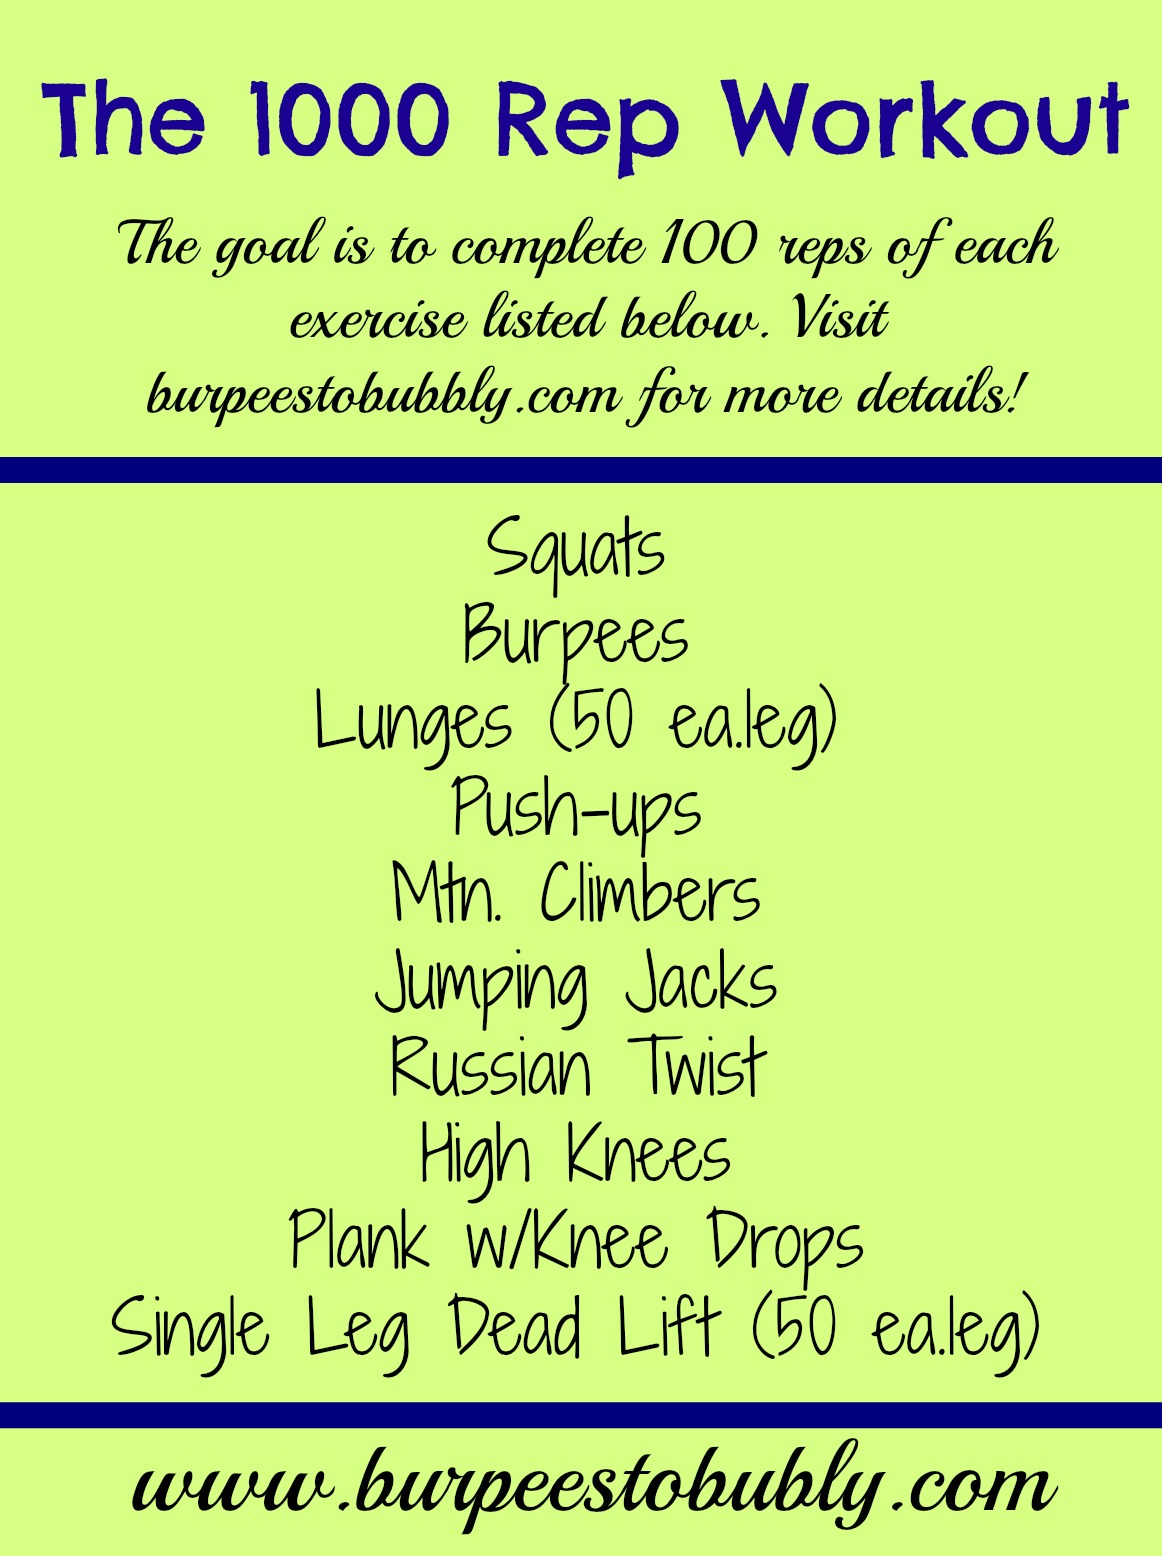 Wednesday Workout: The 1000 Rep Workout – Burpees to Bubbly